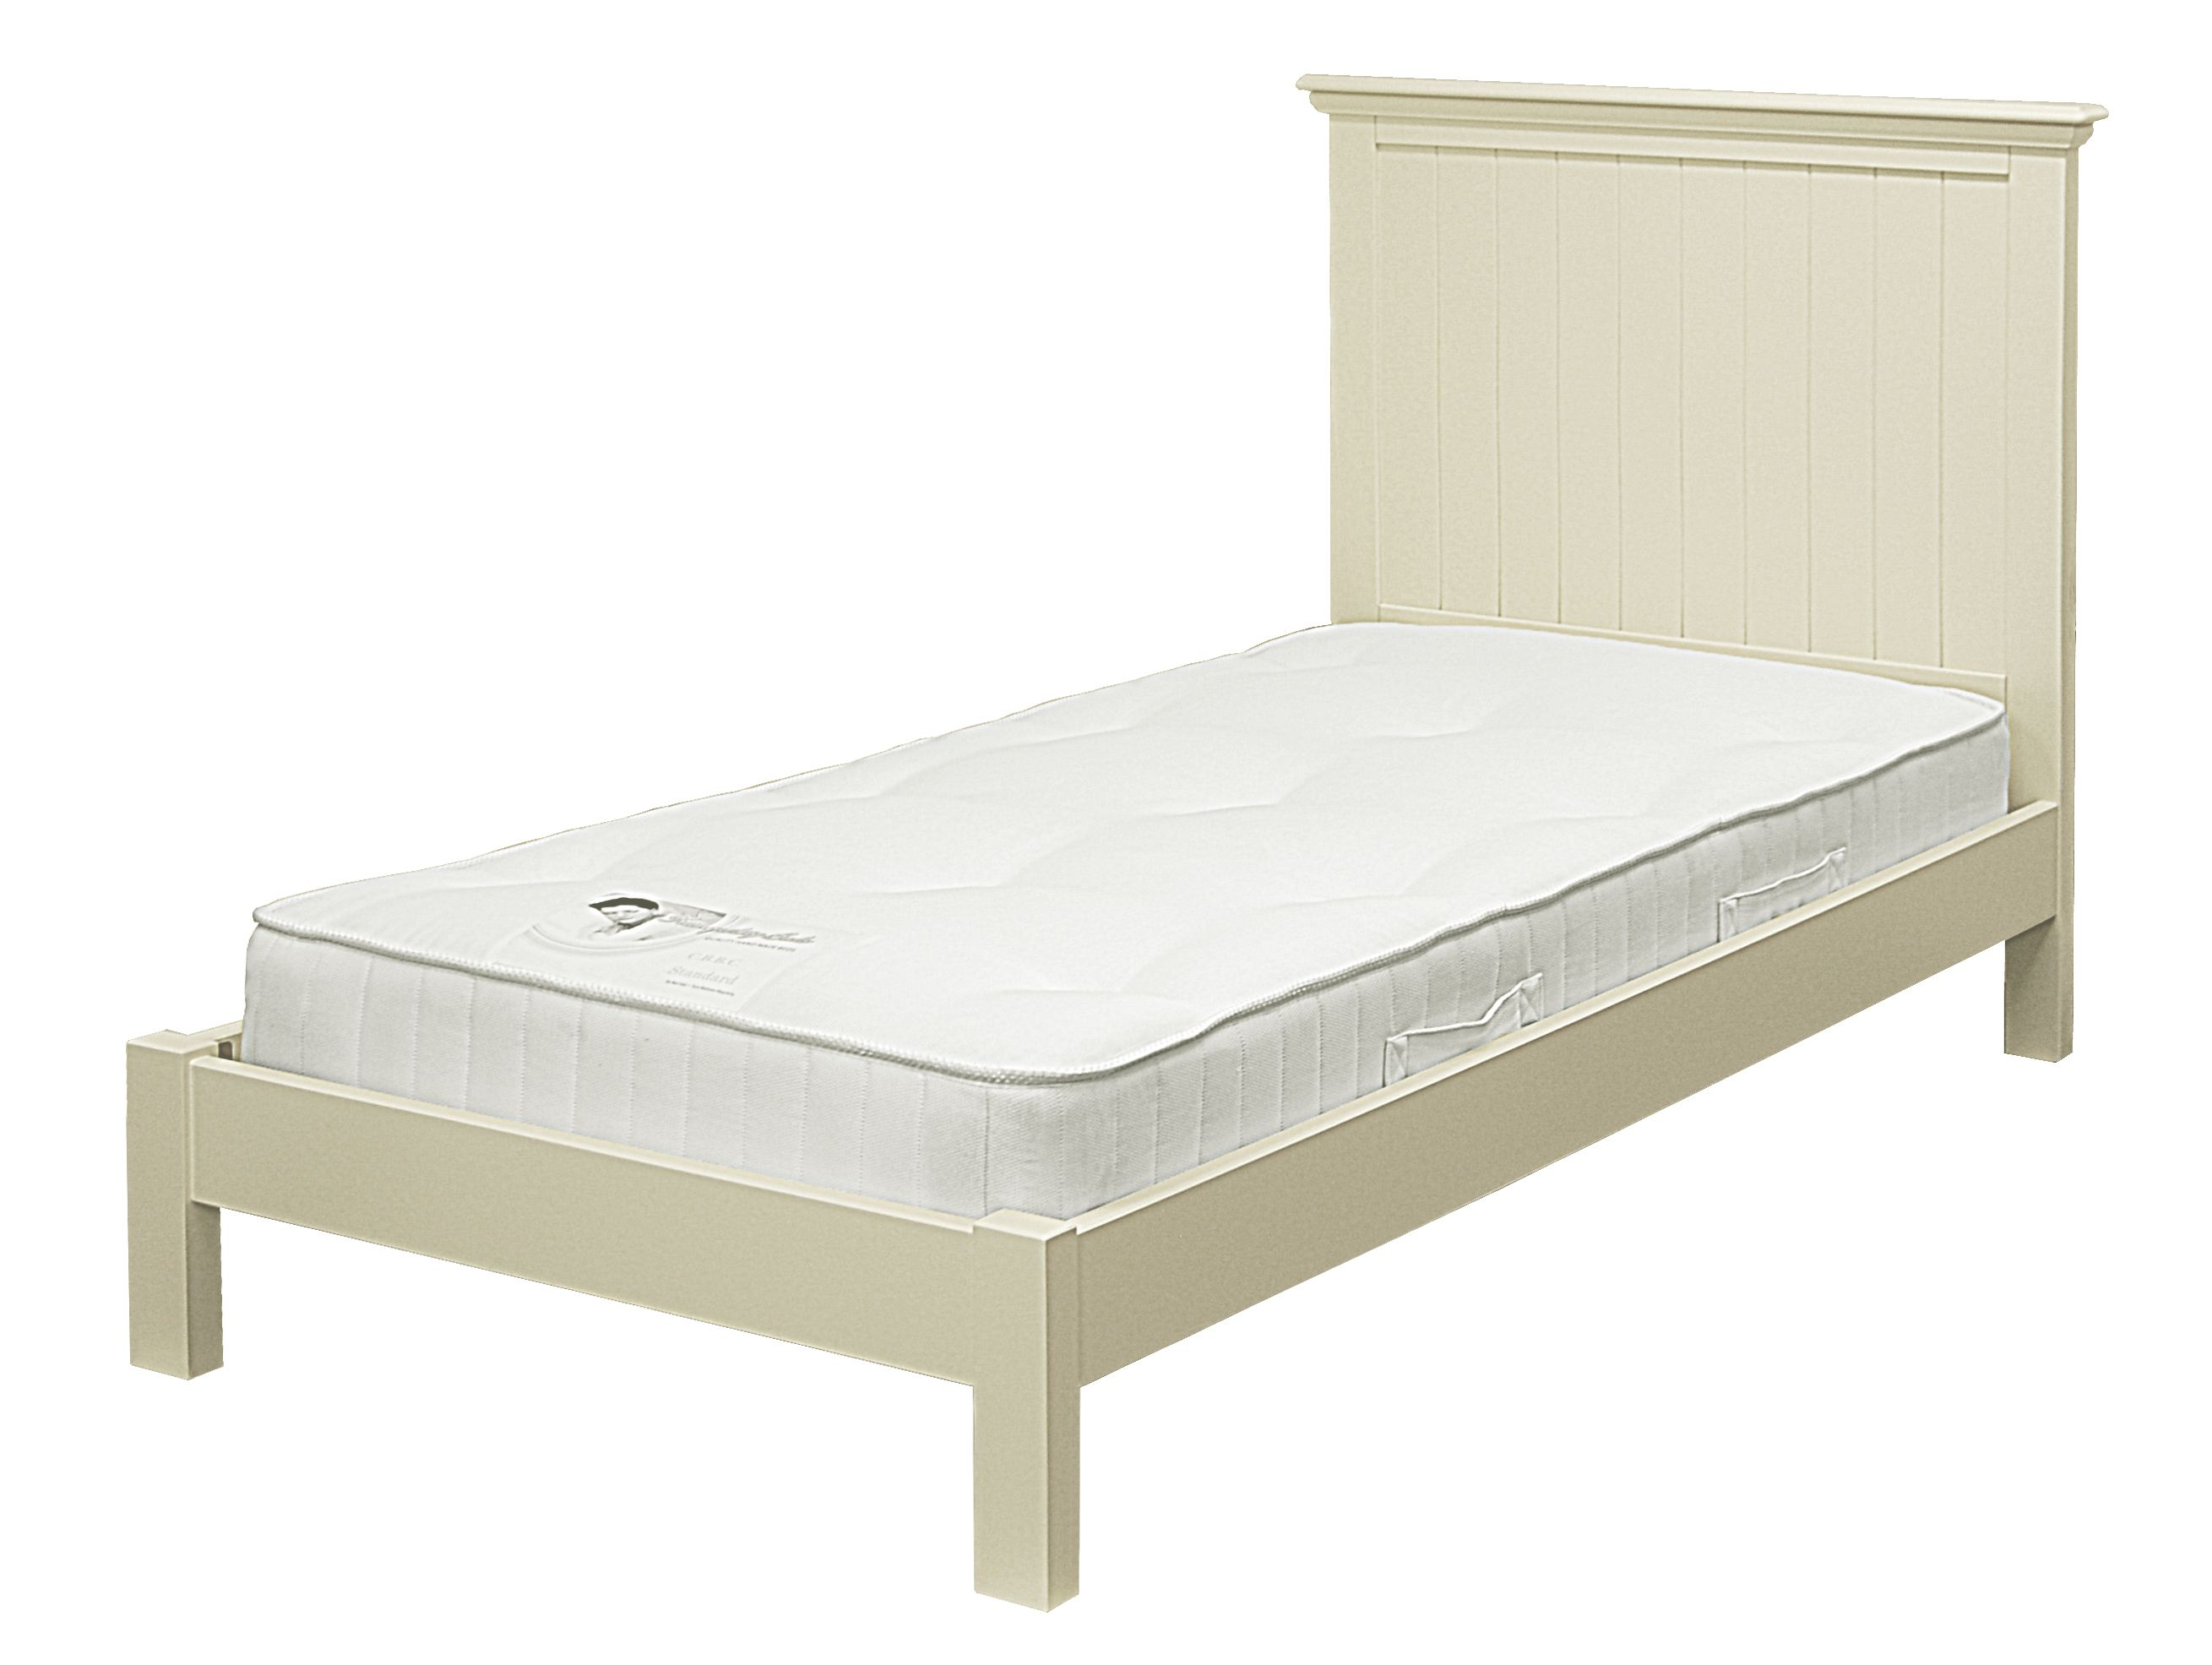 Adorable Tots Adorable Tots New Hampton Low Foot End Grooved Single Bed